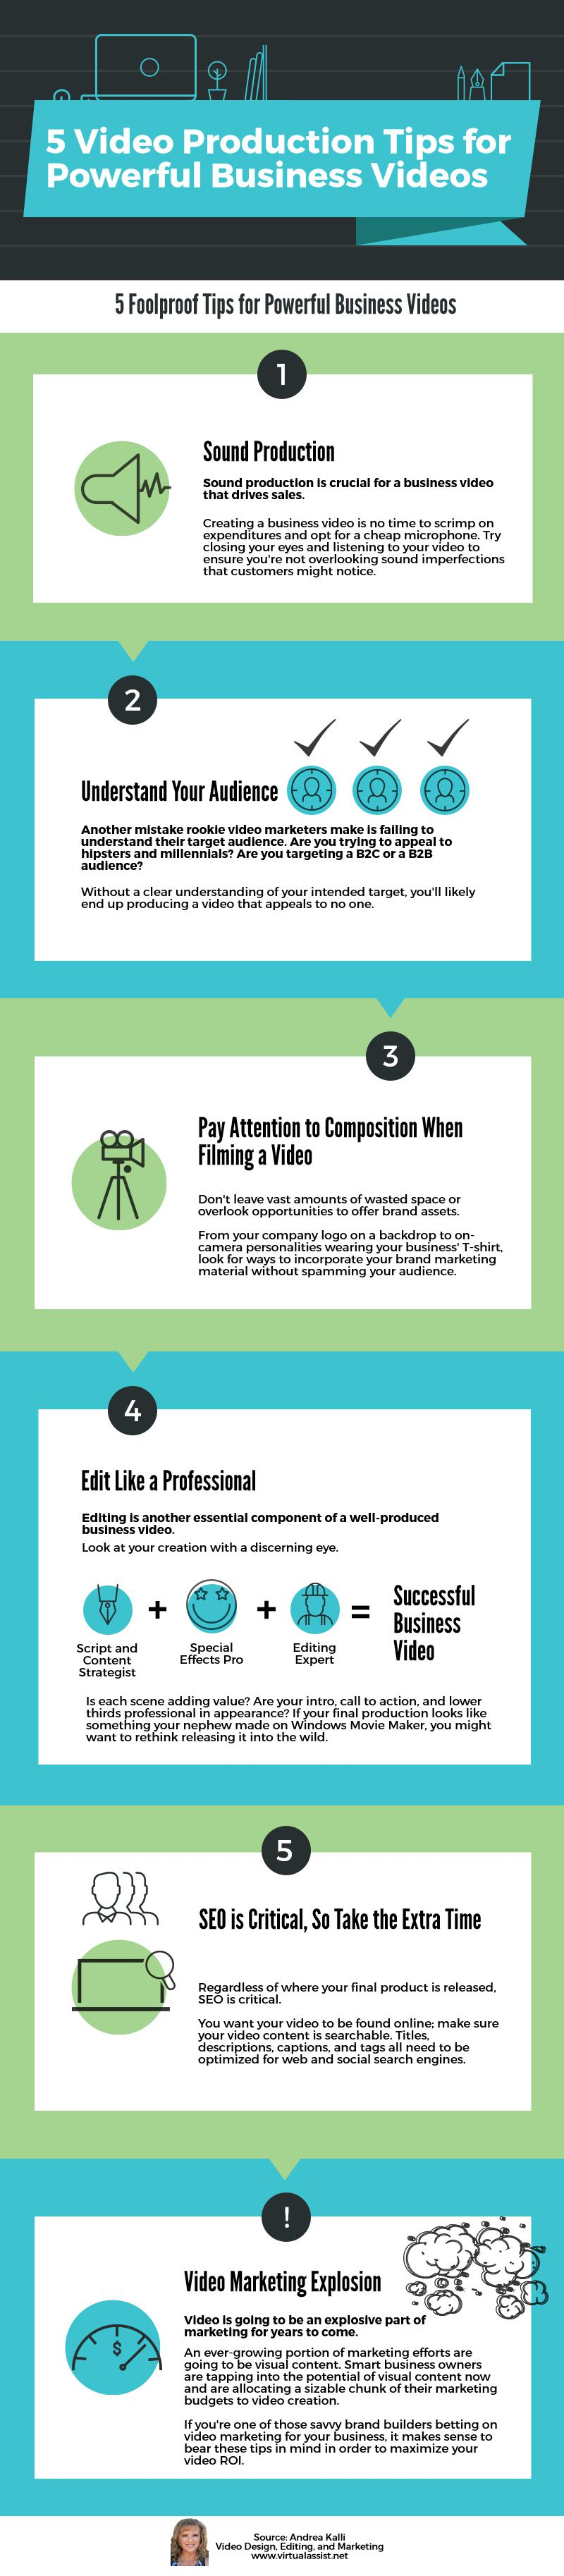 Video Production Tips